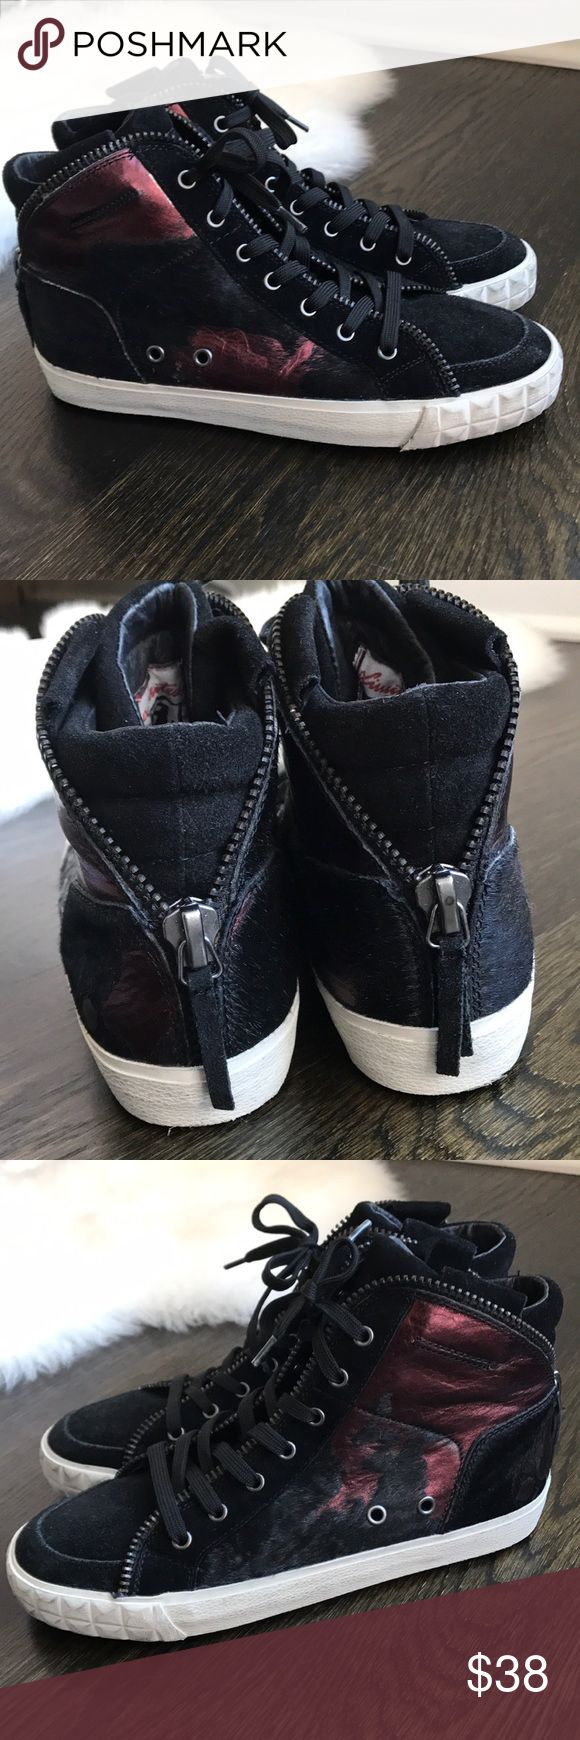 Ash Hightop Sneakers ❗️PRICING FIRM❗️ ❗️Please Note: pricing is beyond fair and reasonable. Sneakers worn once - in near perfect condition. No price reduction past this price point will be considered.   ❗️If unsure about sizing or fit; please inquire for more details prior to purchase. Ash Shoes Sneakers